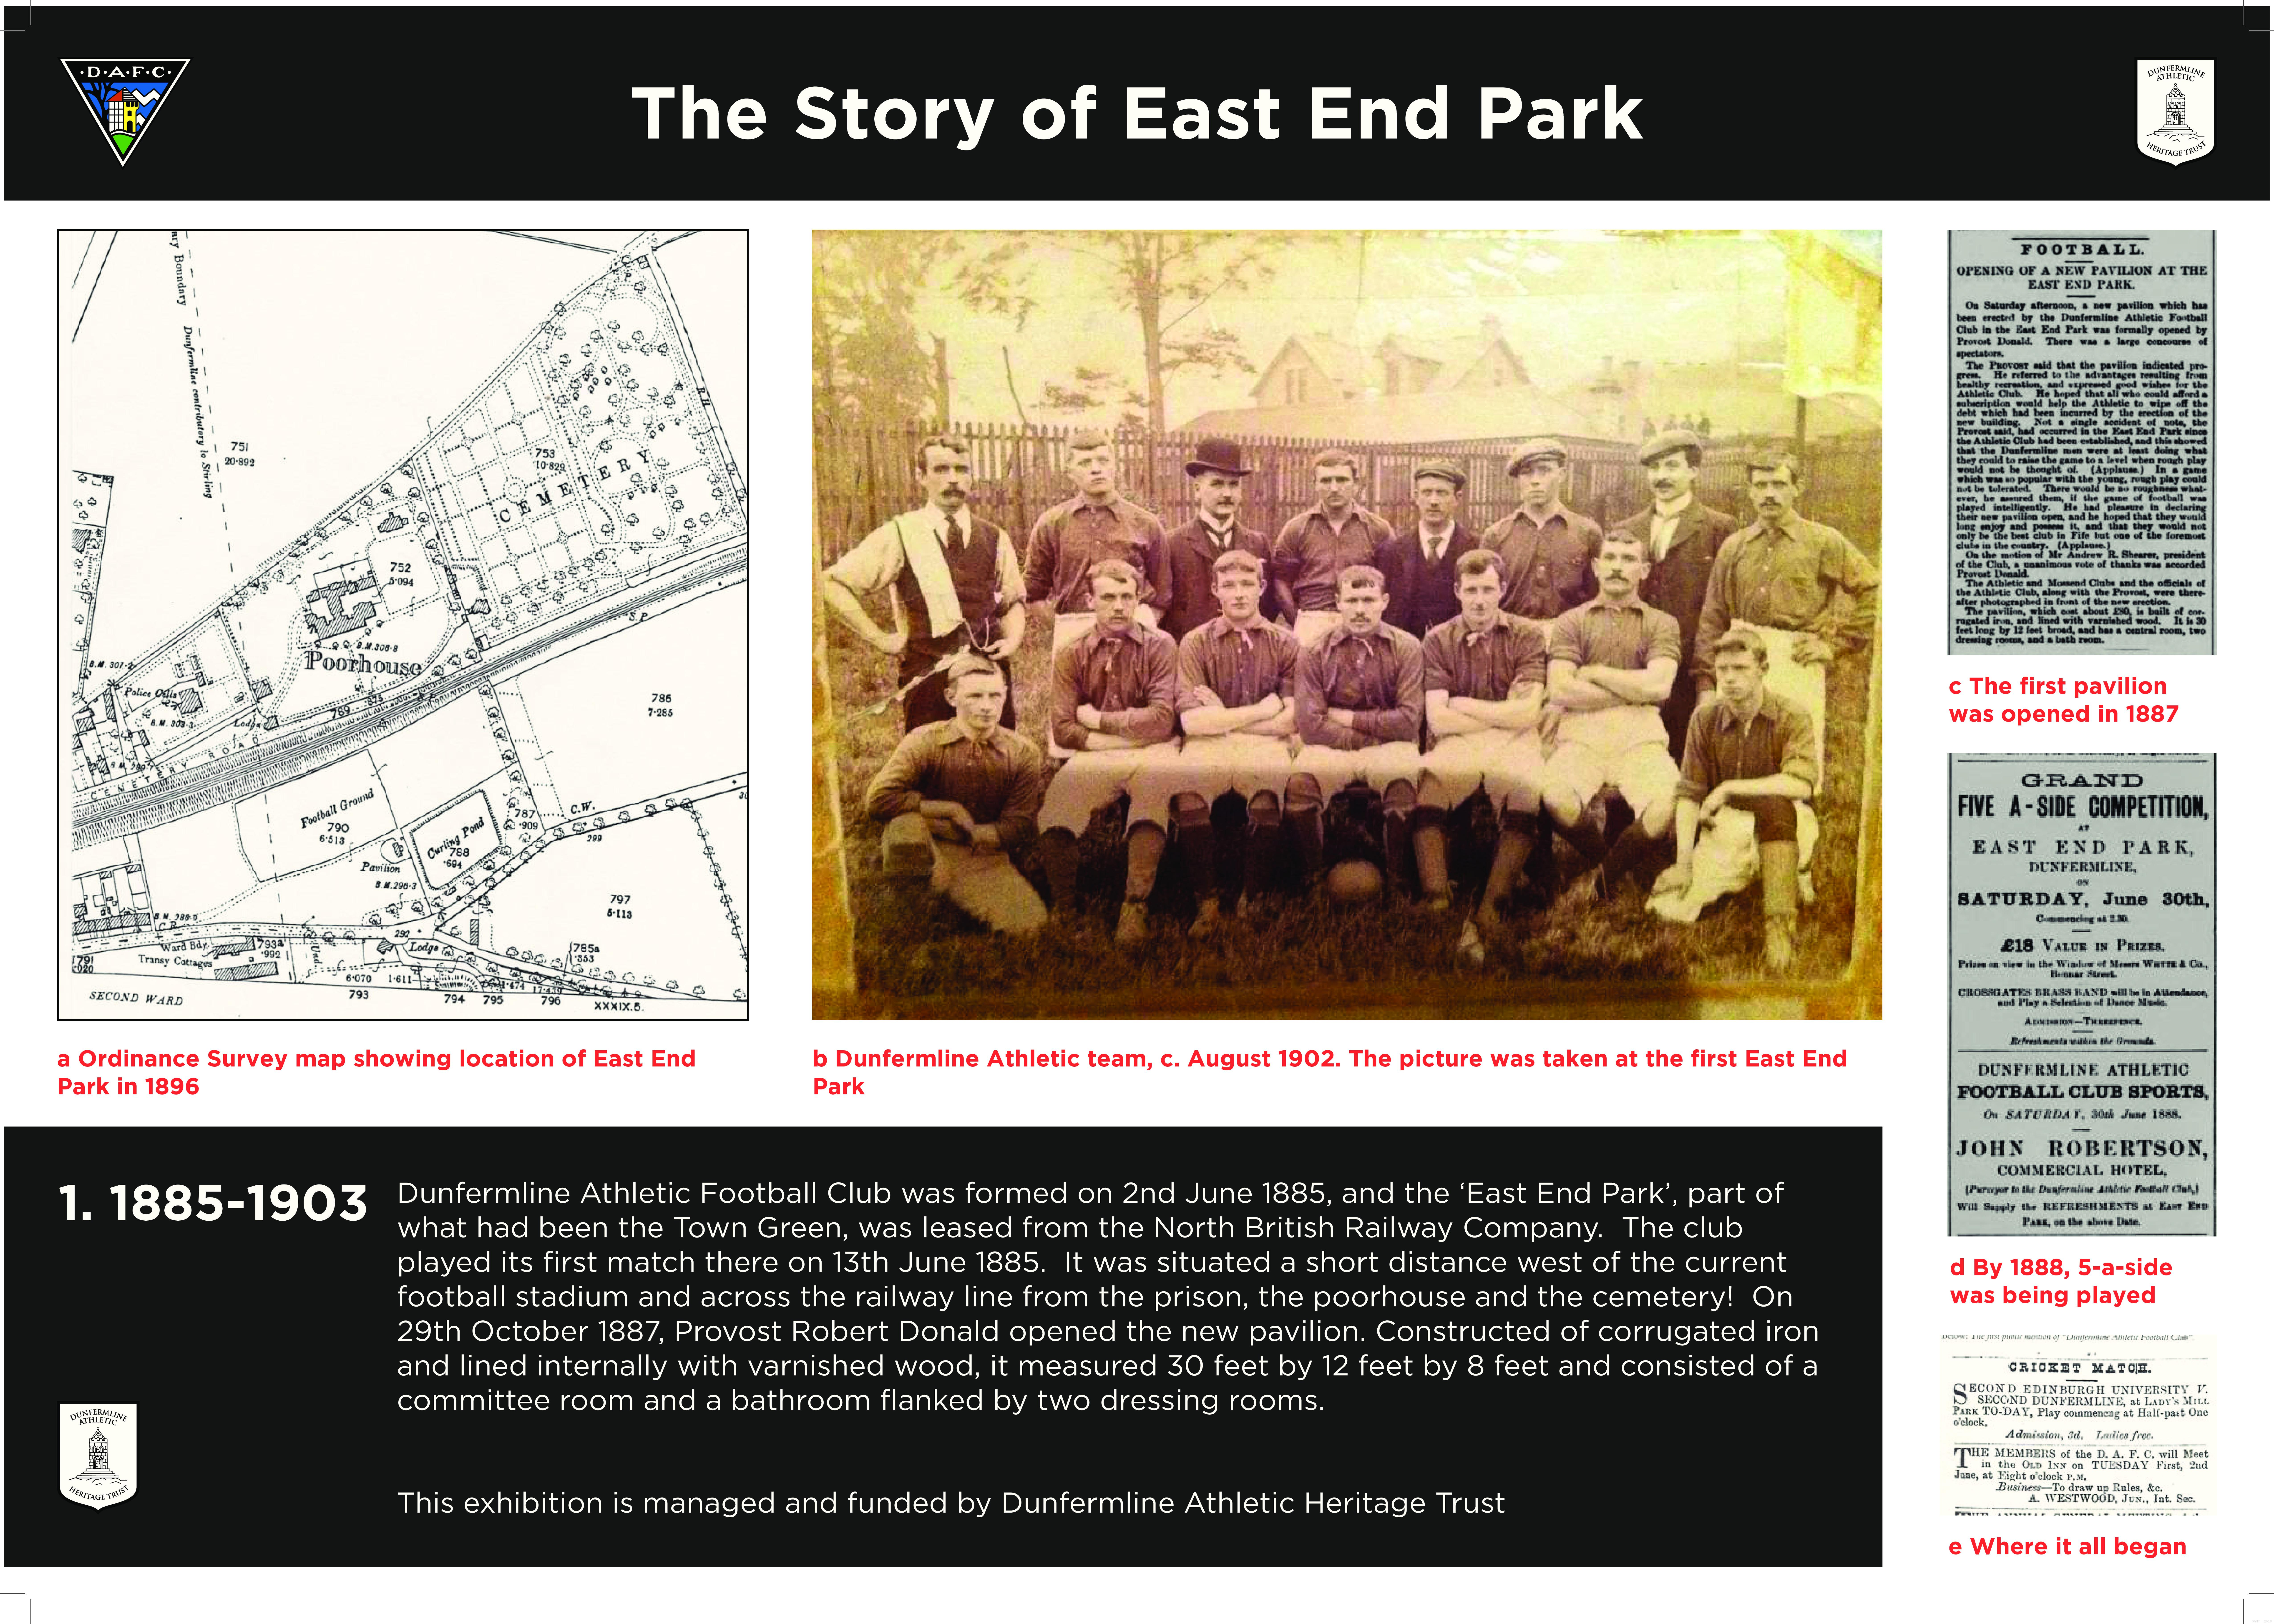 The Story of East End Park - News